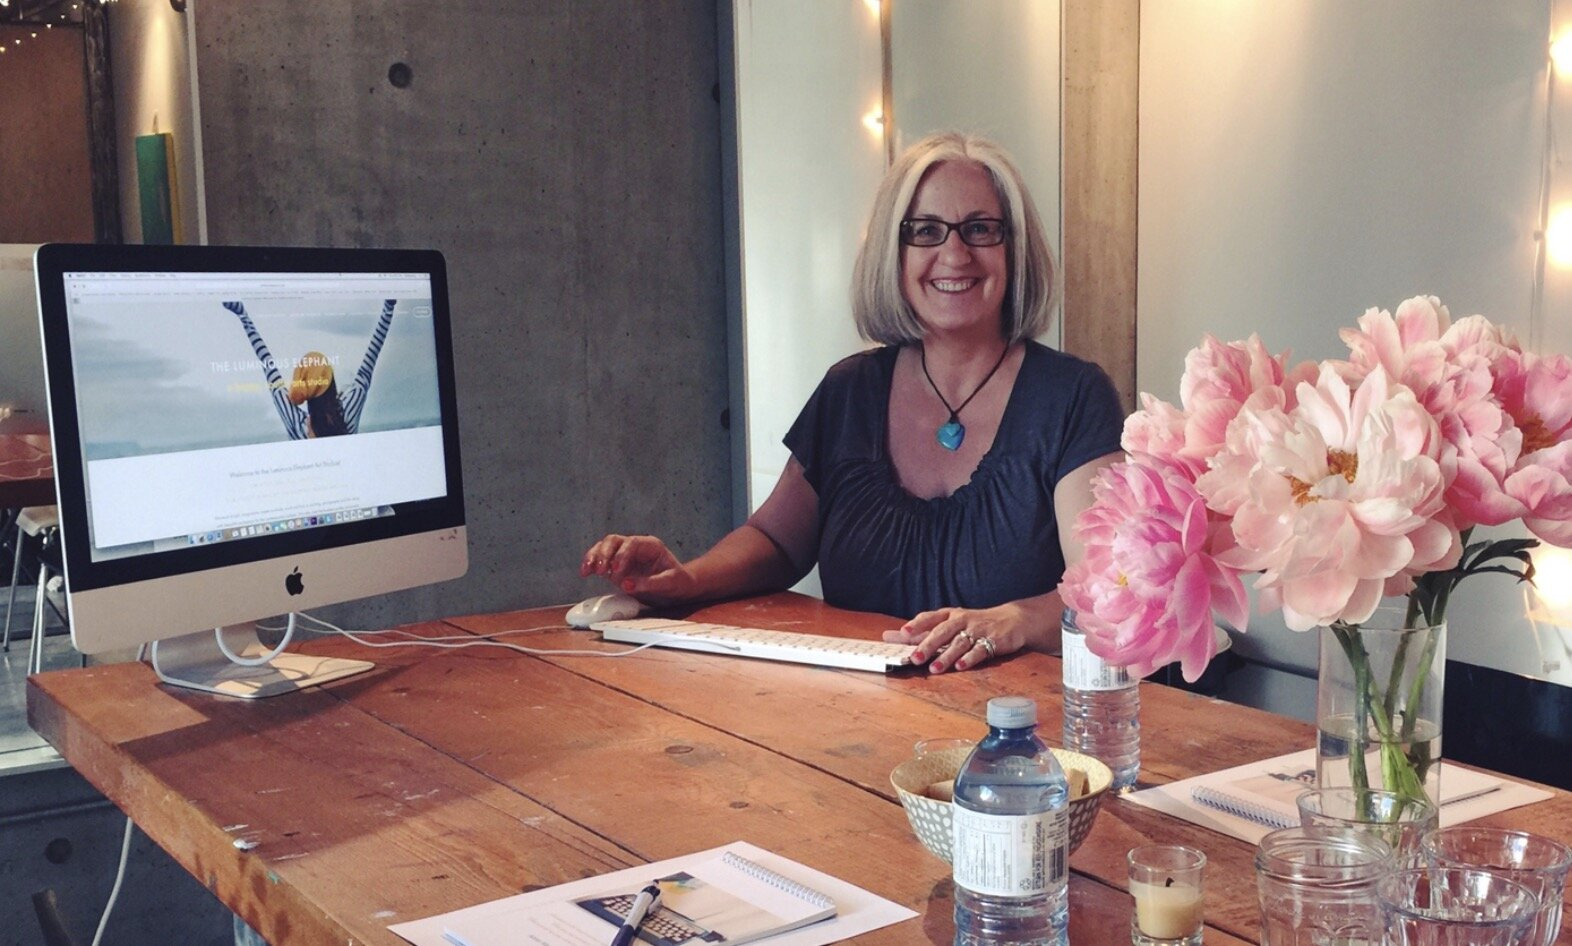 Kerstin brings a quiet and mindful approach to Squarespace and business development courses.